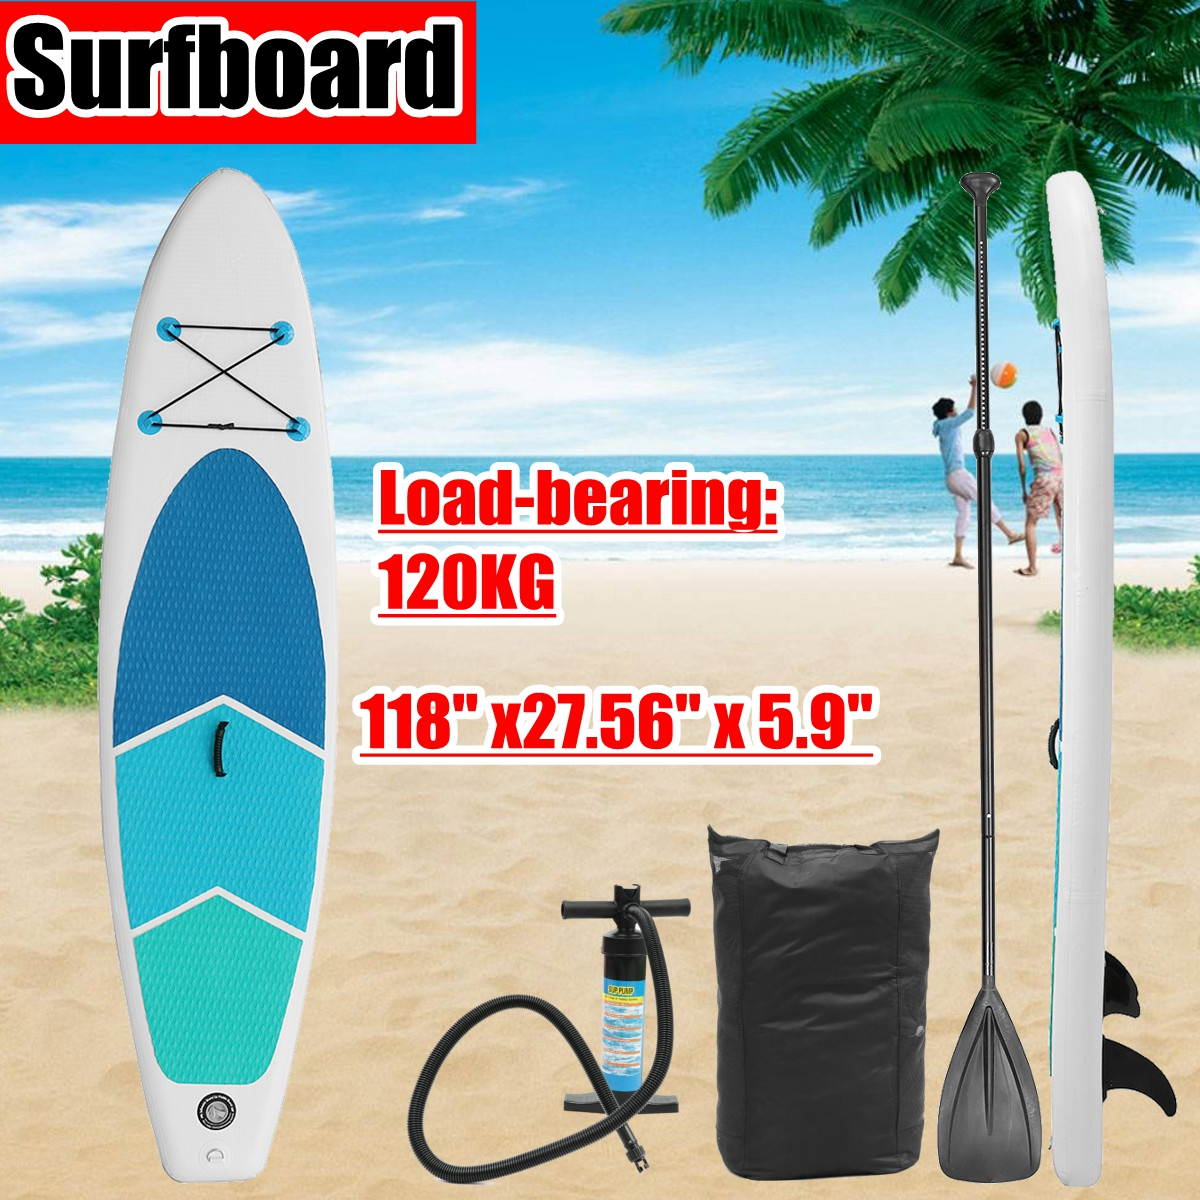 Gofun 3MX0.7MX0.15M Inch Stand Up Paddle Surfboard Inflatable Board SUP Set Wave Rider + Pump inflatable surf board paddle boat shoulder bag carry bag for inflatable boat kayak sup board stand up paddle surfing board pump oar dinghy raft surf board a05011